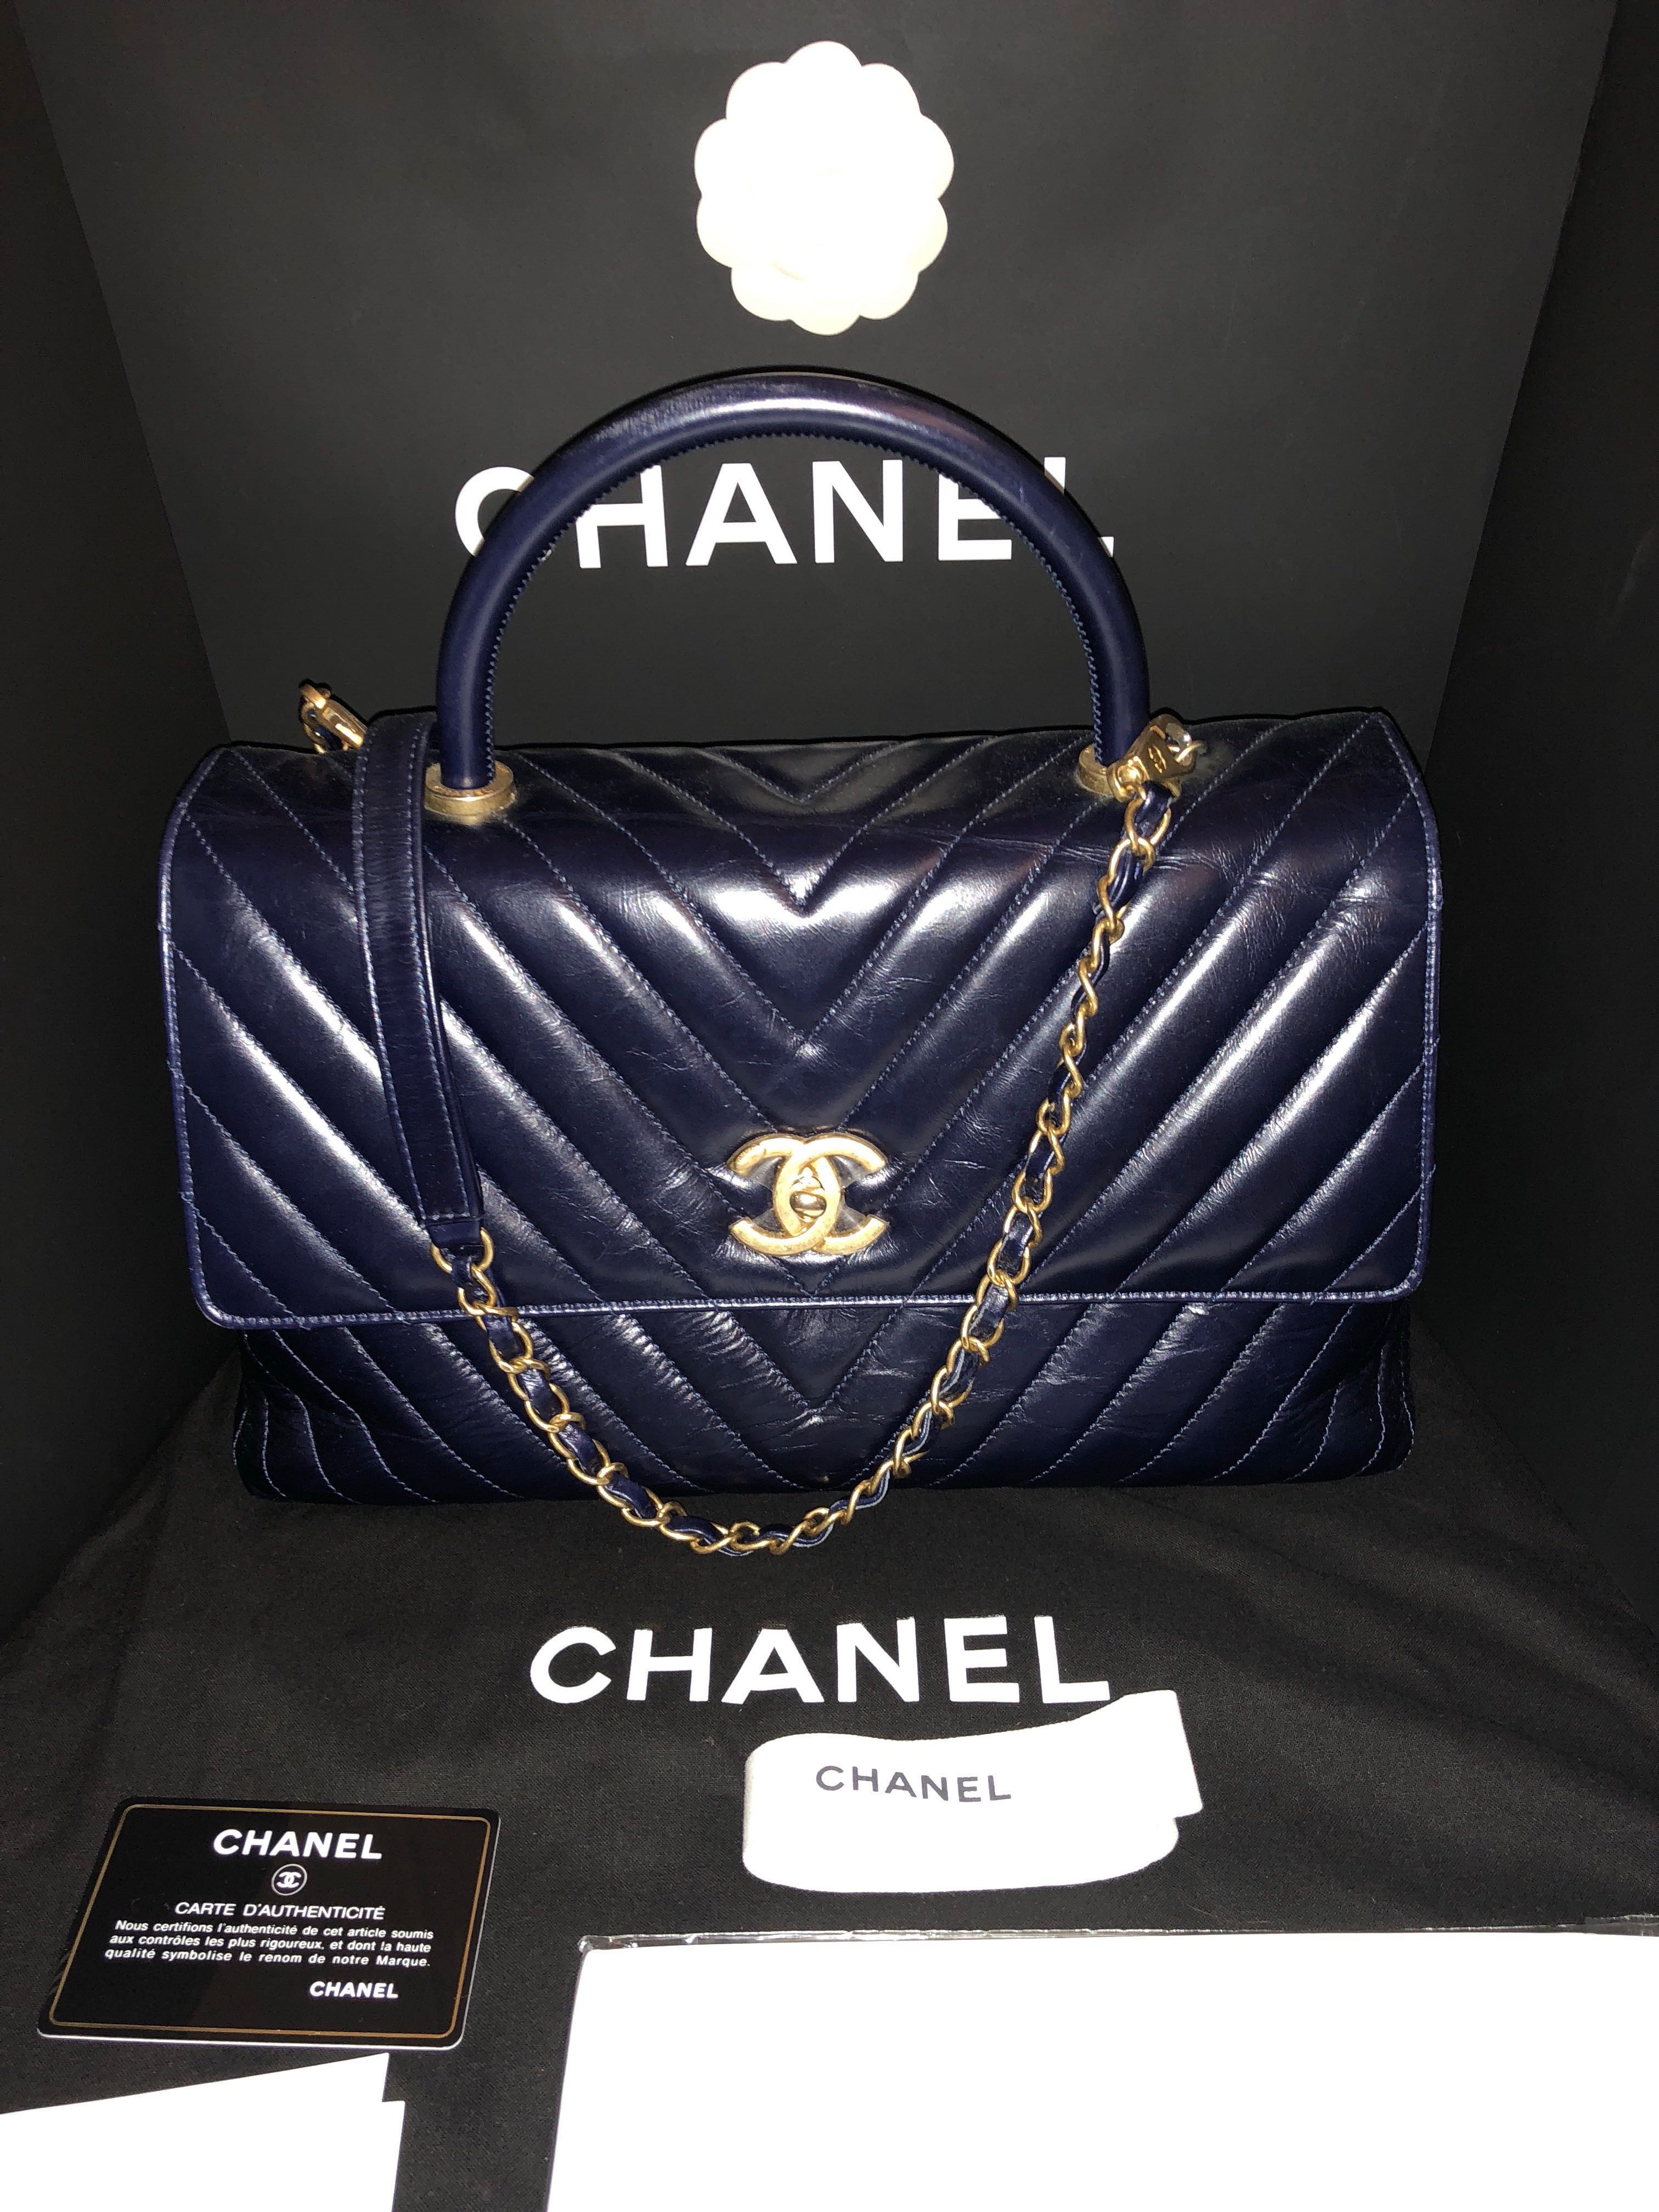 1a834e7437 CHANEL Coco Handle 2-Way Shoulder Bag Chervon Navy in GHW (Medium), Women's  Fashion, Bags & Wallets, Handbags on Carousell